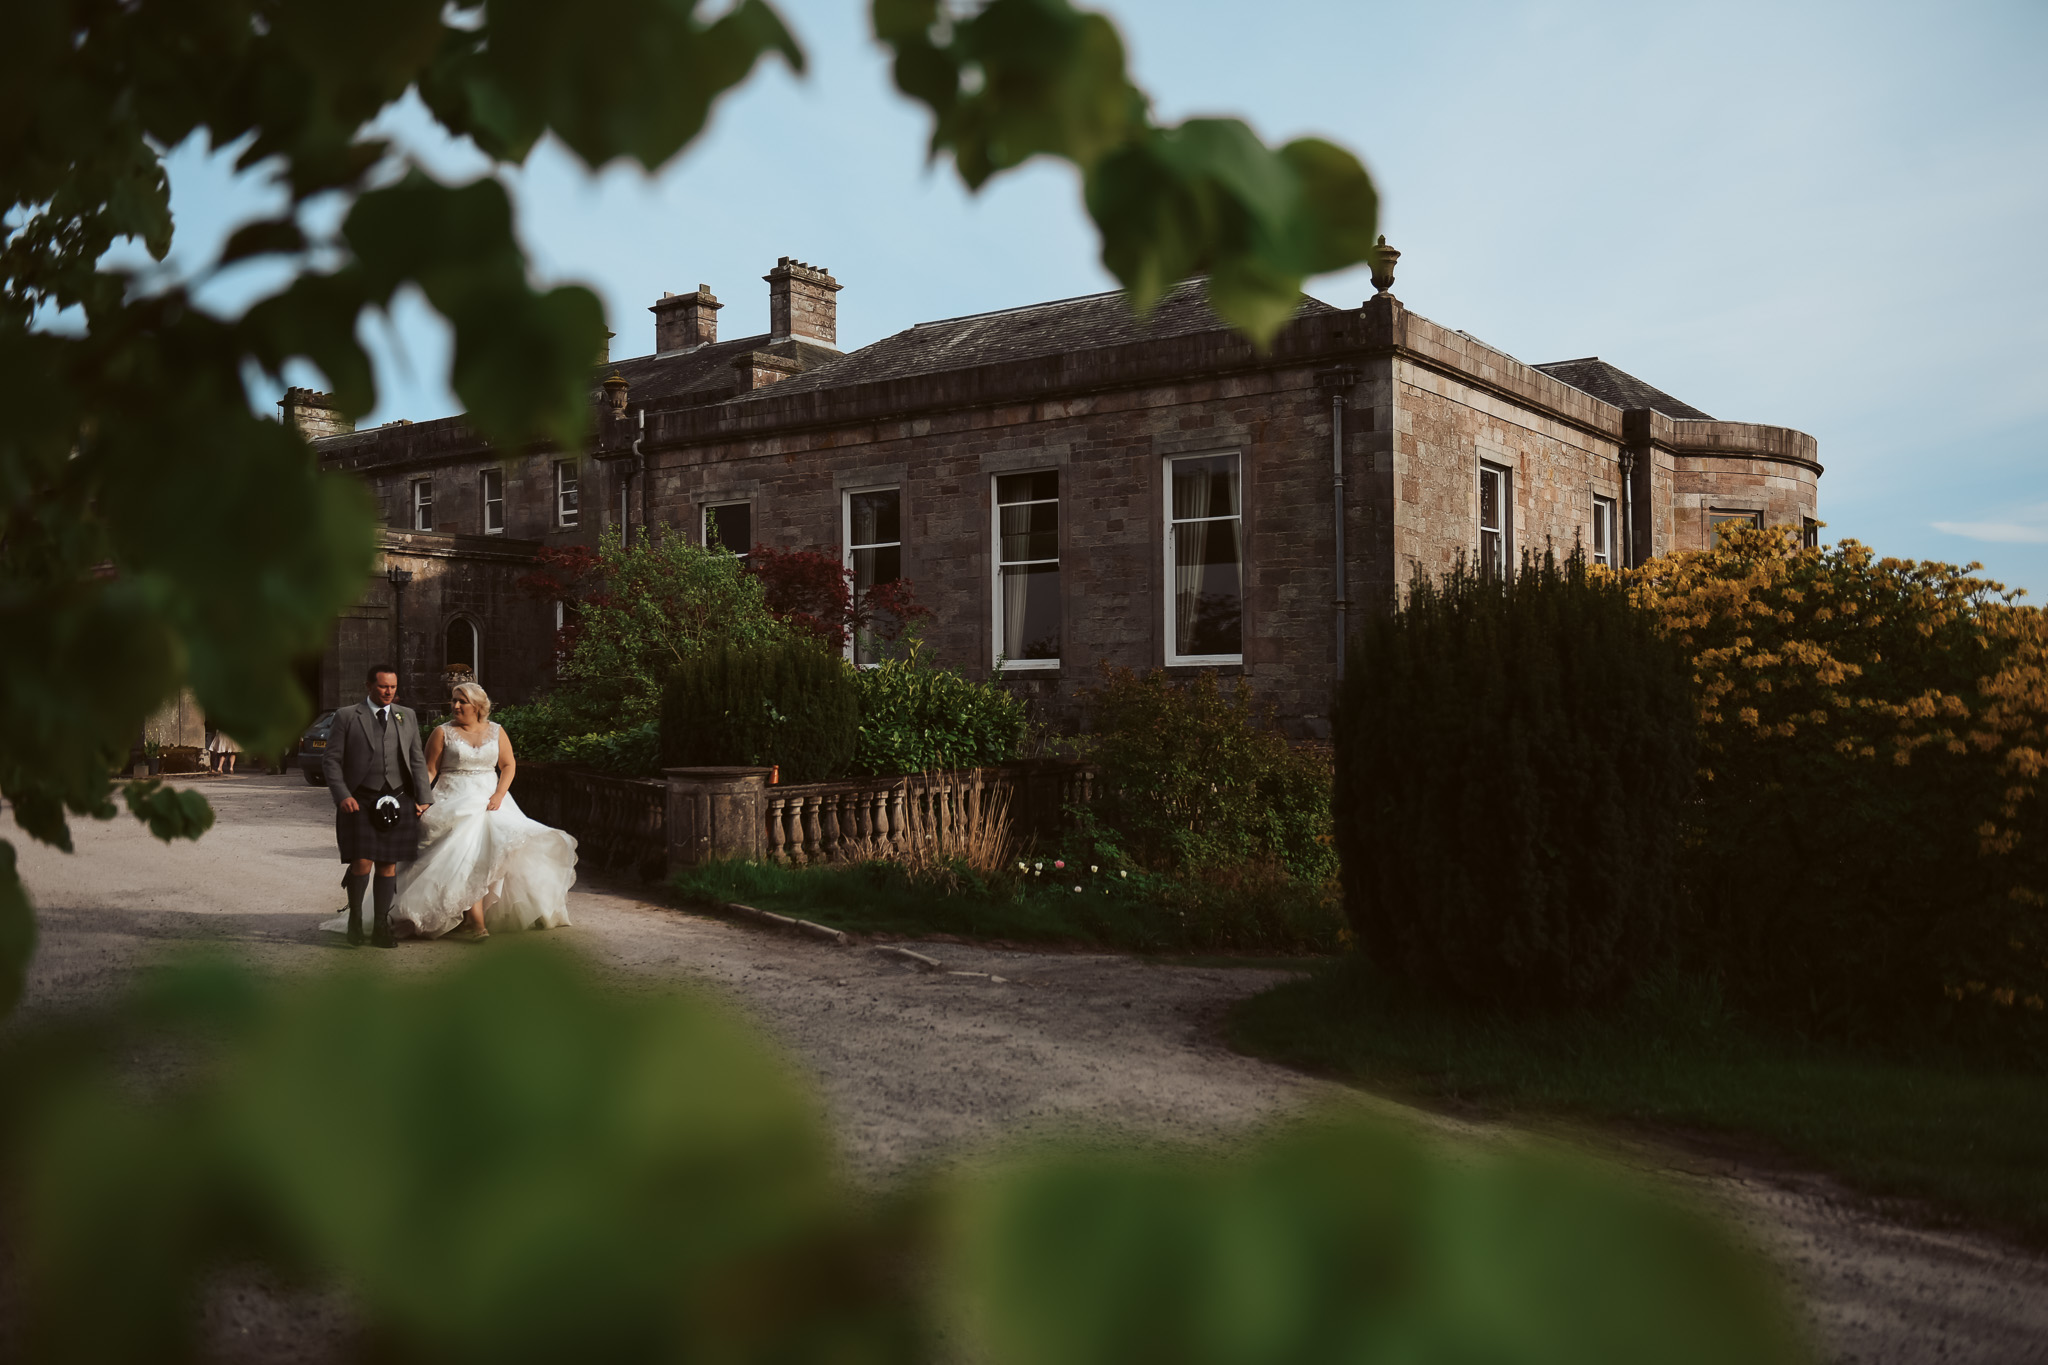 Brid e and groom going for a walk the the Palladian mansion grounds